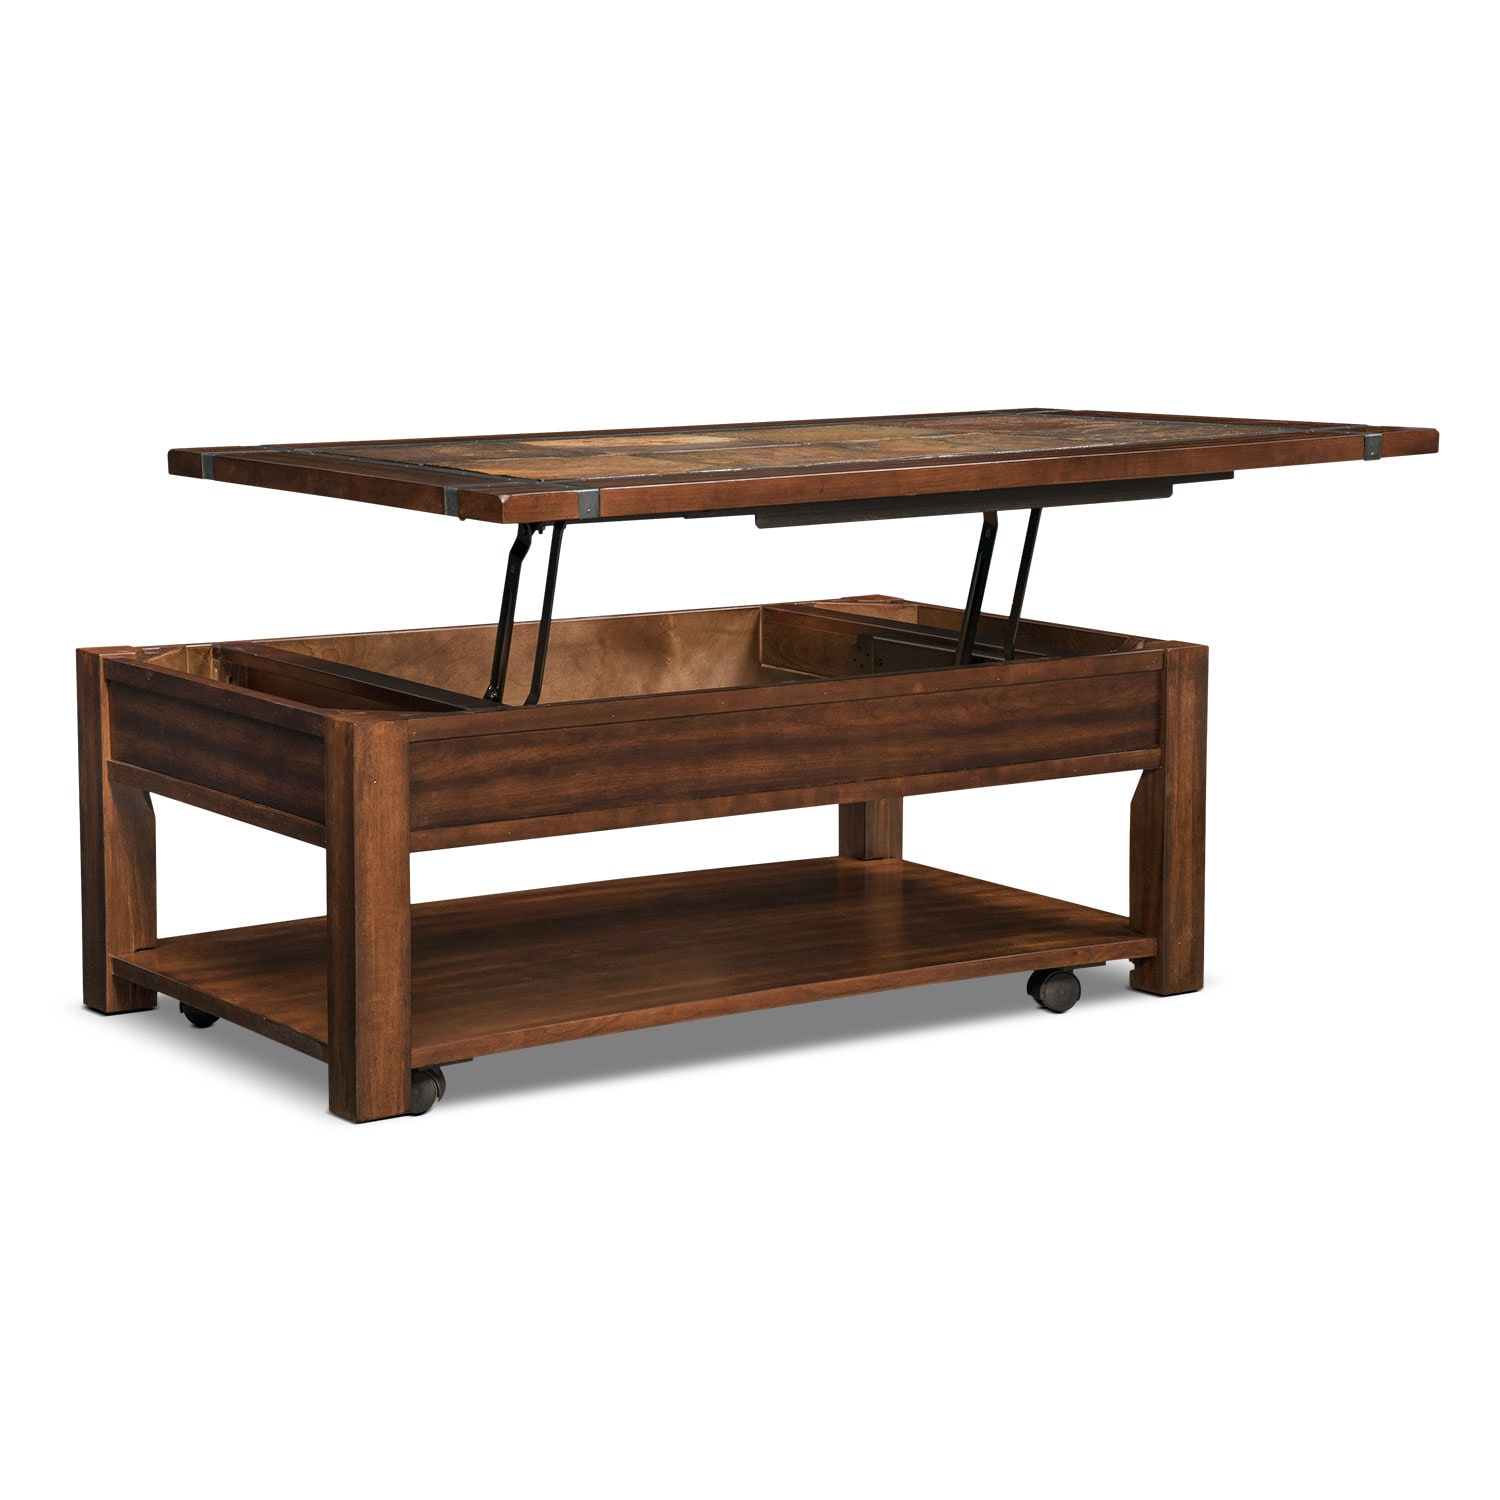 Home Kitchen Furniture Living Room Furniture Tables Coffee Tables . - Roanoke Rectangular Lift Top Cocktail Table With Casters Cherry